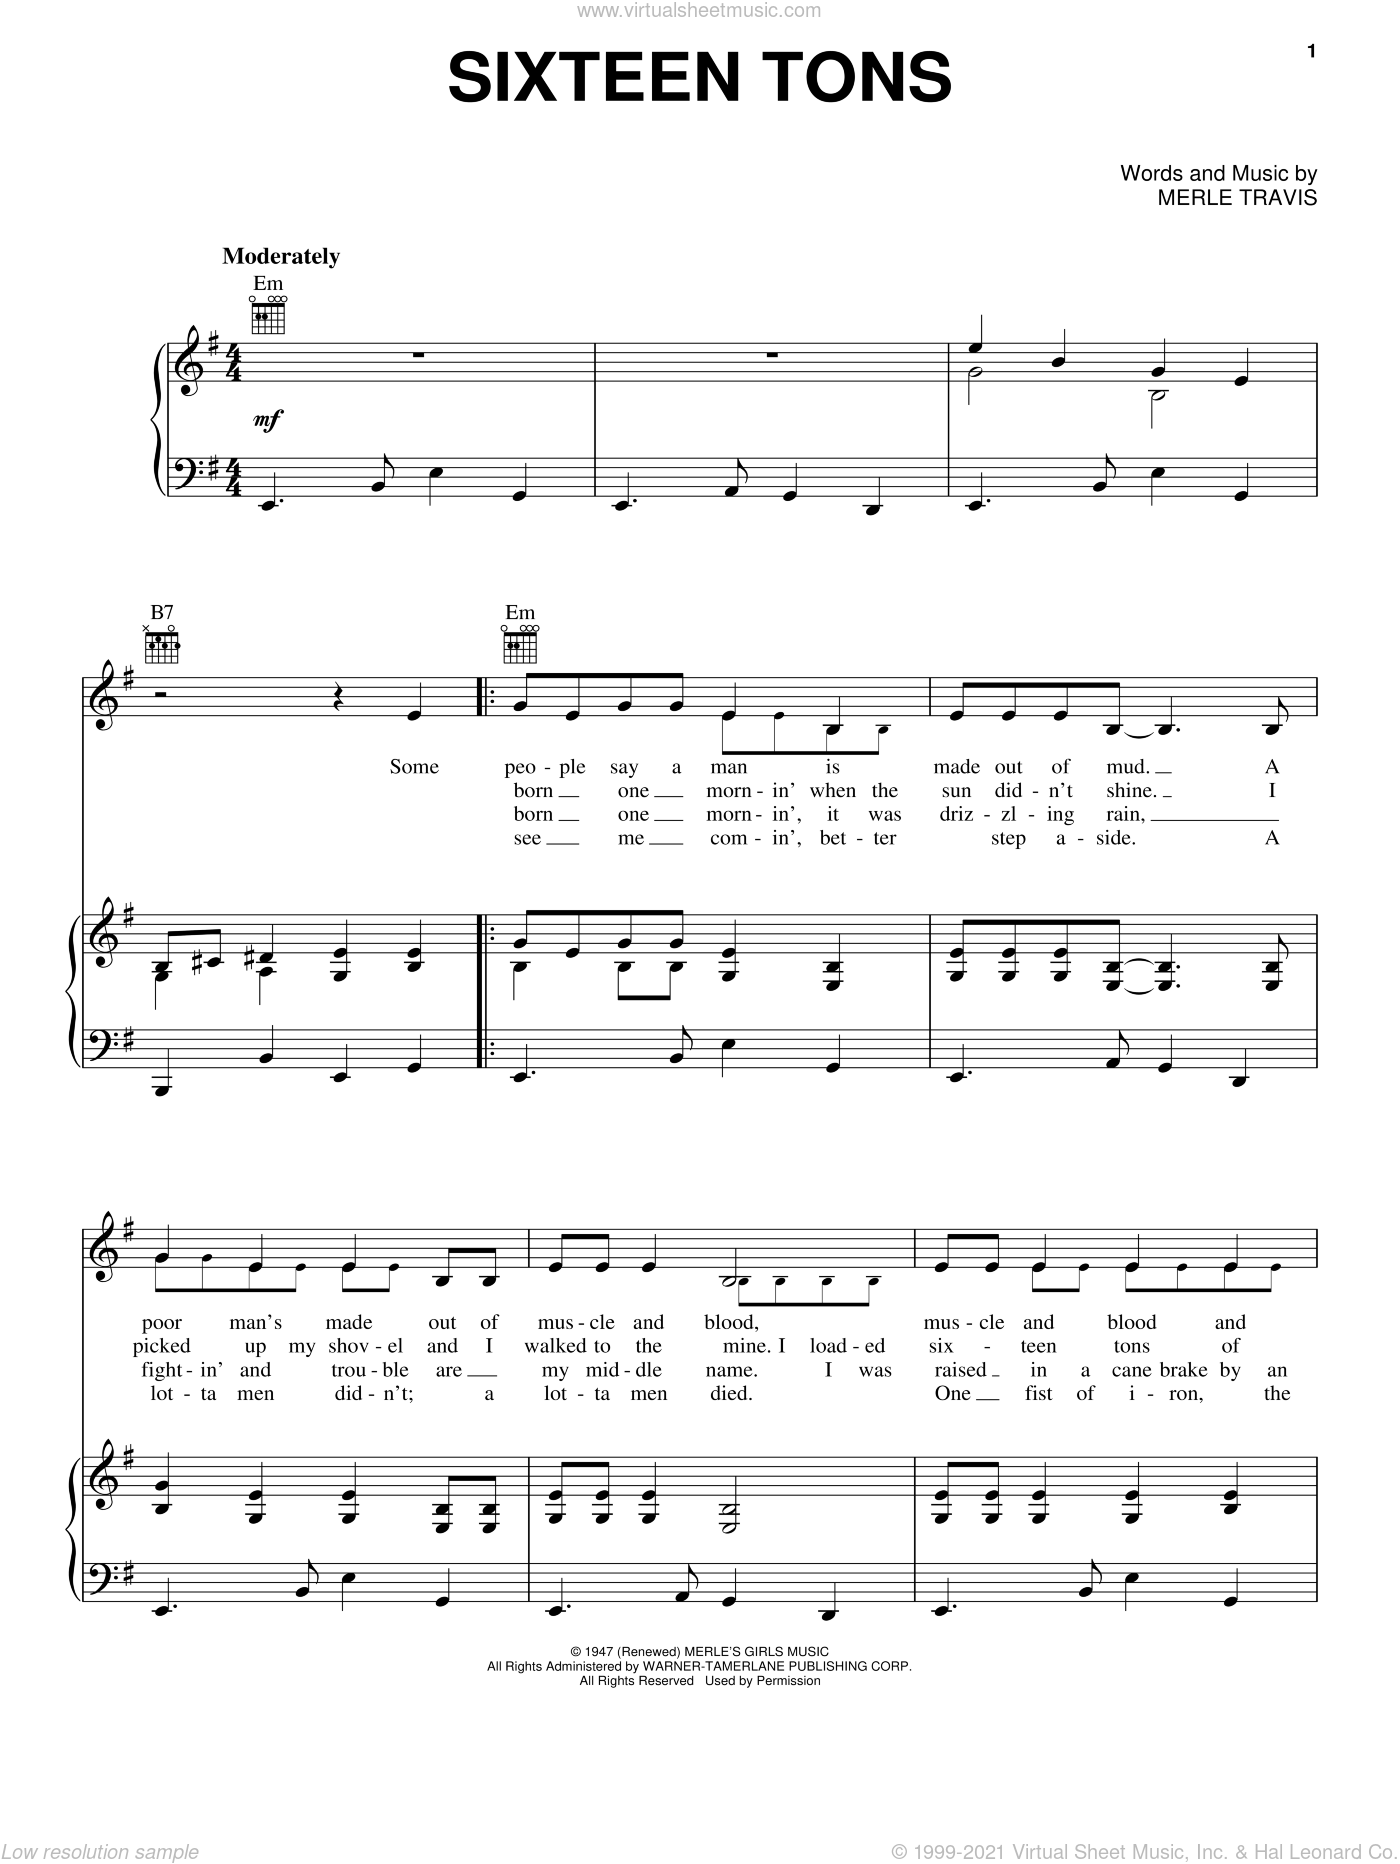 Sixteen Tons sheet music for voice, piano or guitar by Merle Travis and Tennessee Ernie Ford. Score Image Preview.